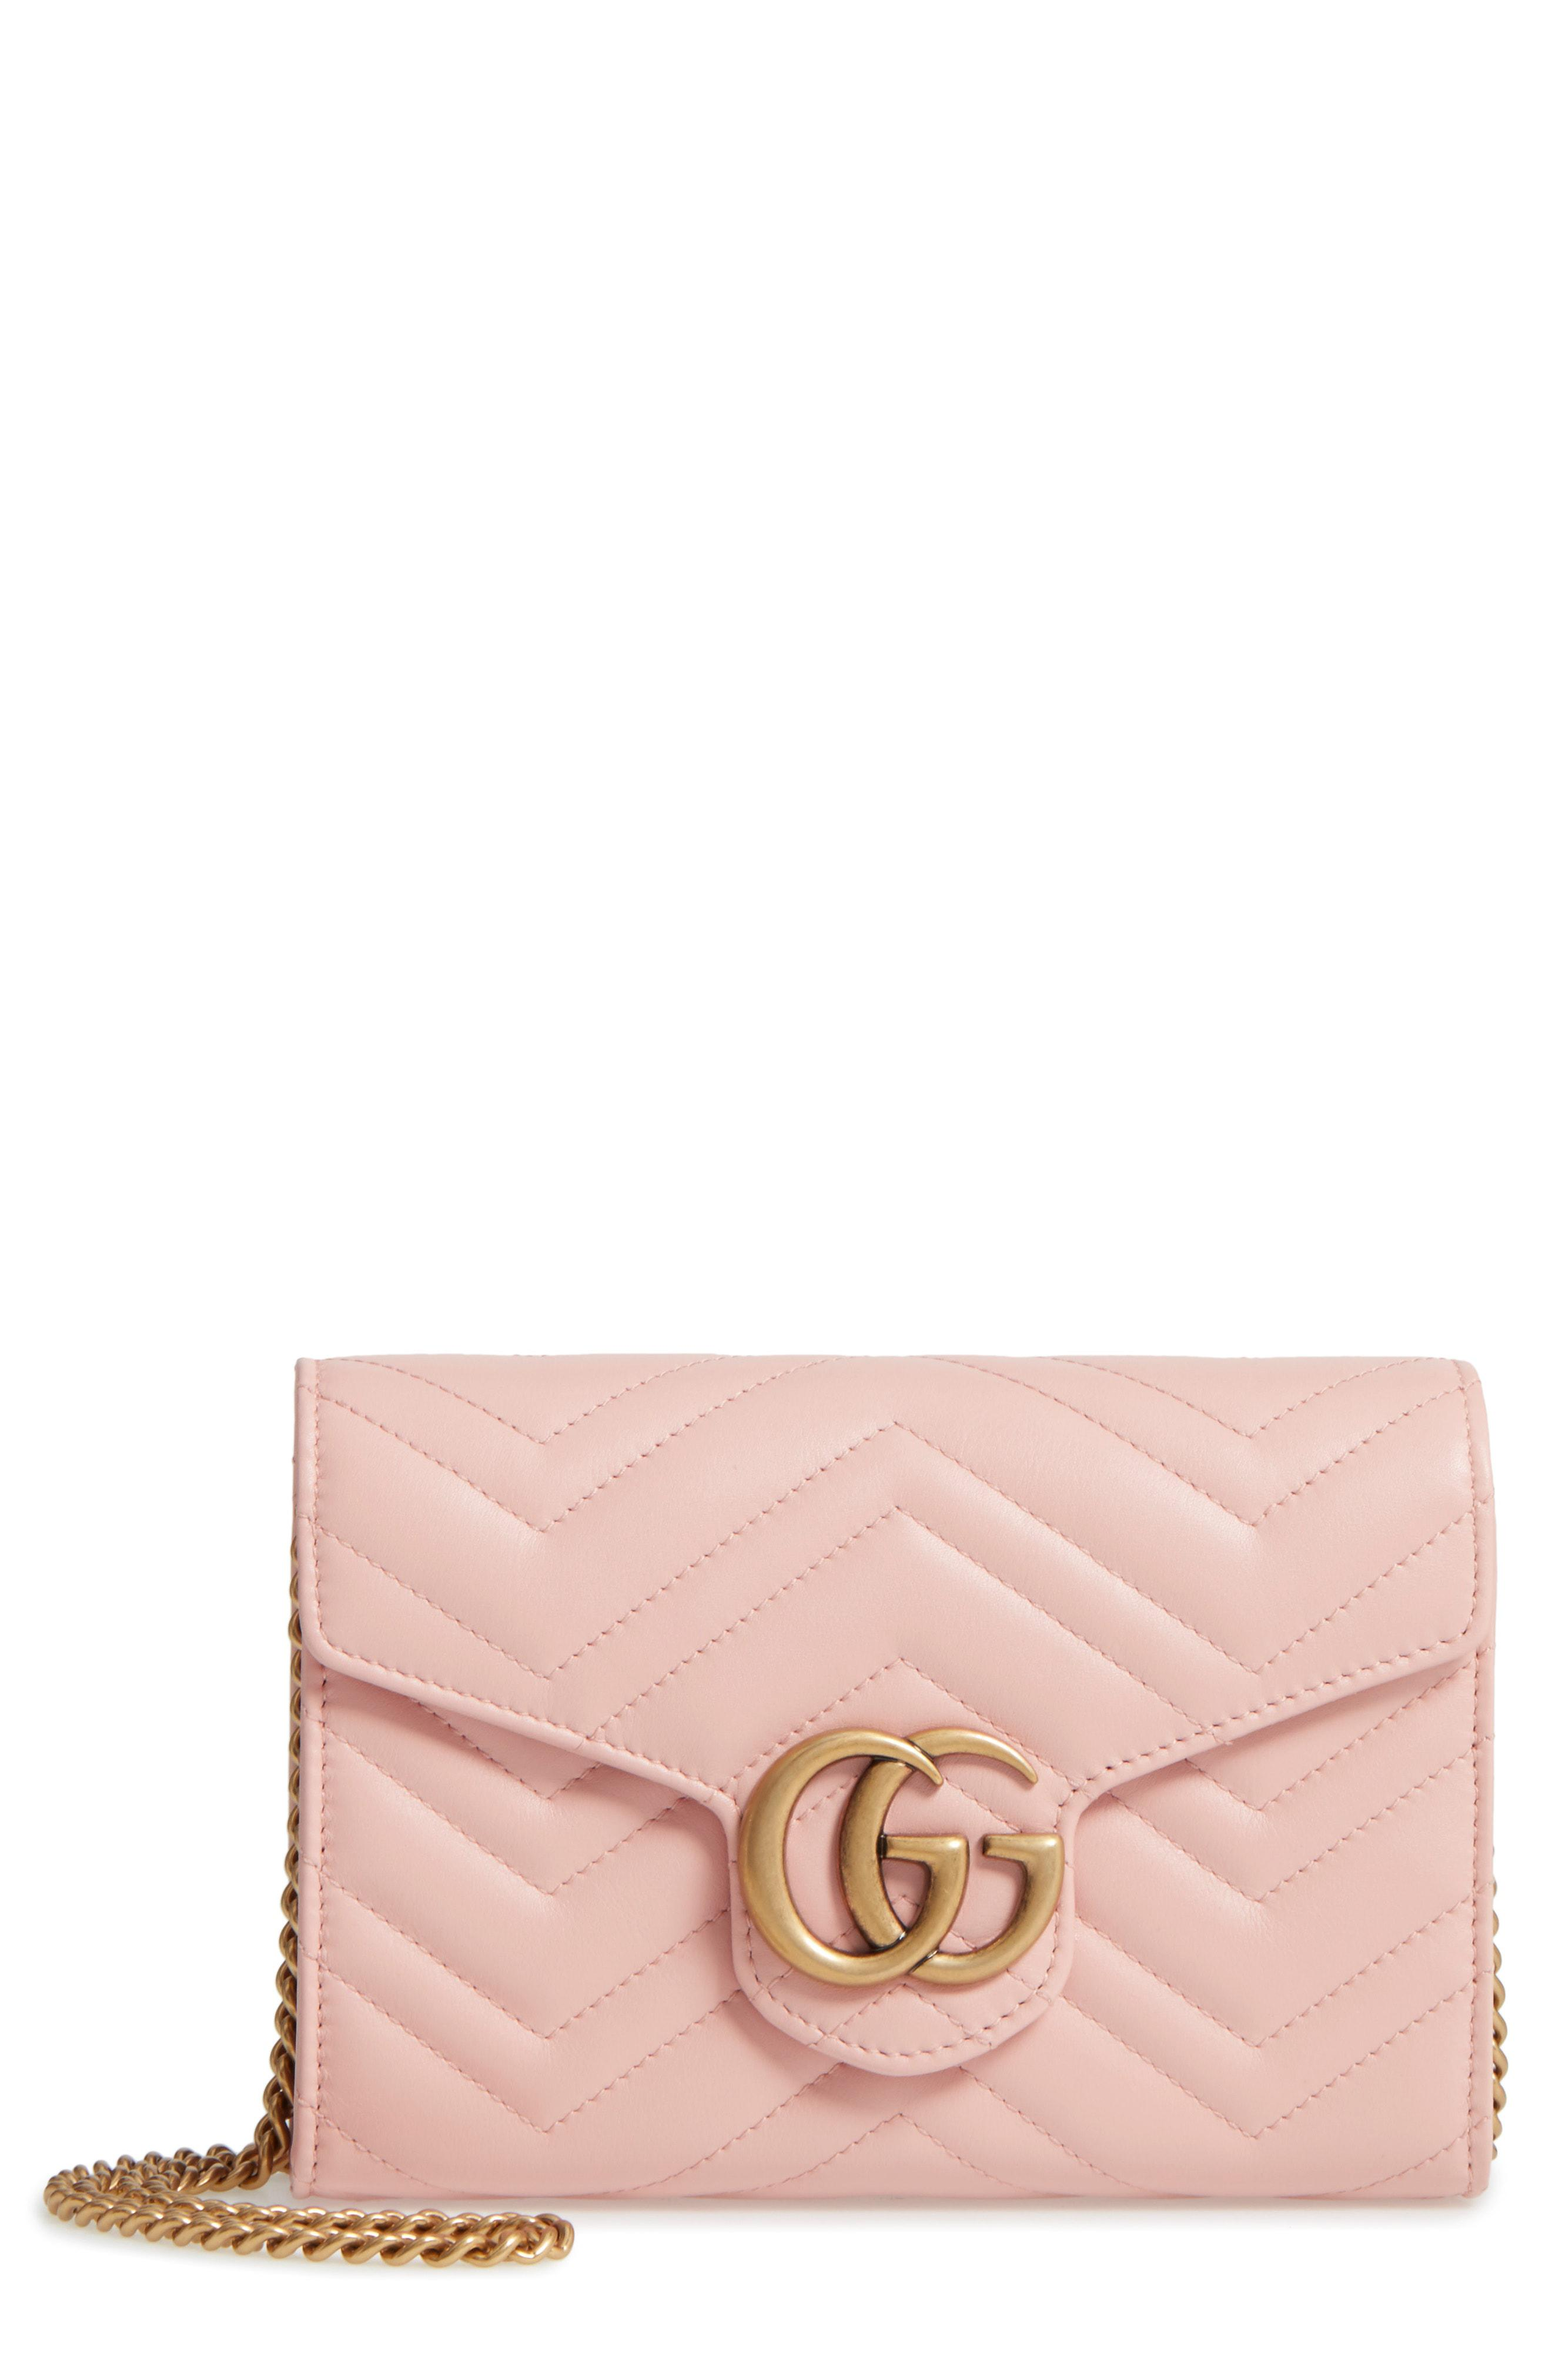 08a4b4d7e938 Lyst - Gucci Gg Marmont Matelasse Leather Wallet On A Chain in Pink